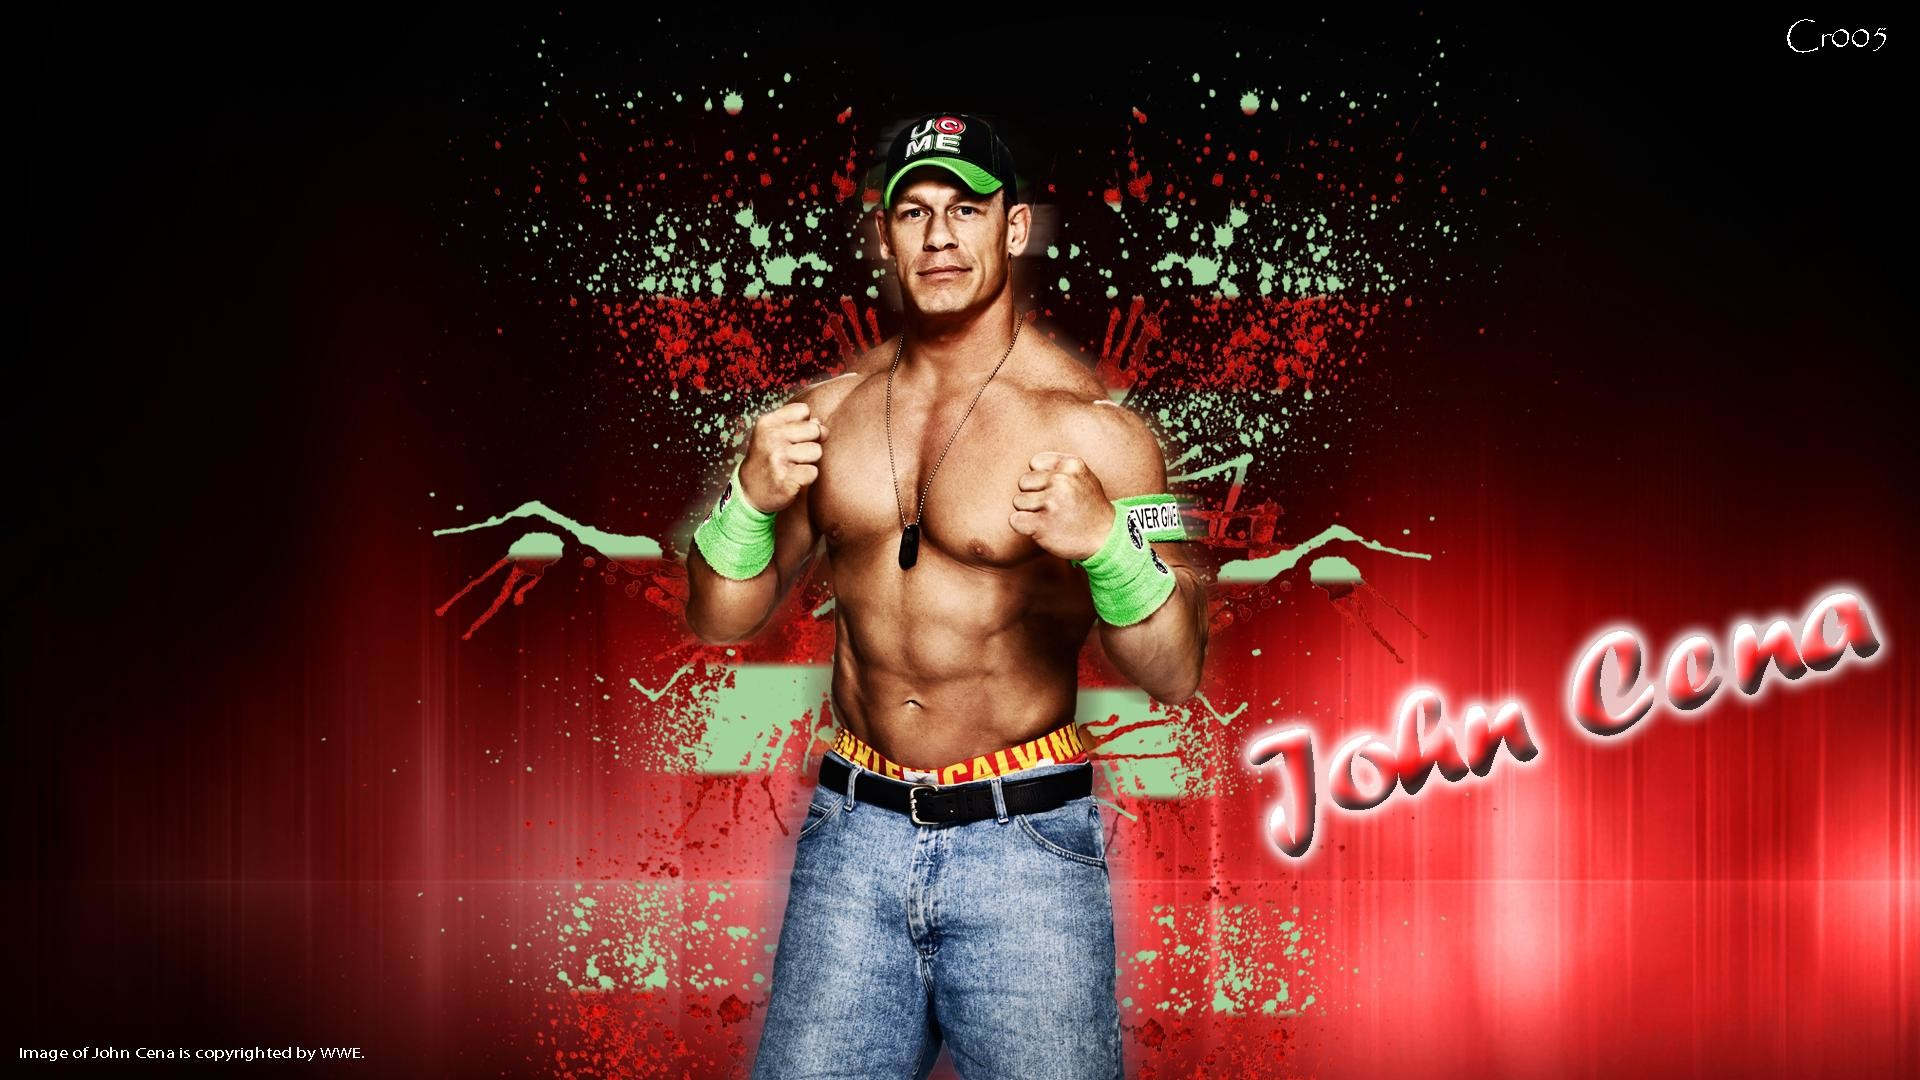 1920x1080 John Cena Full HD Wallpaper